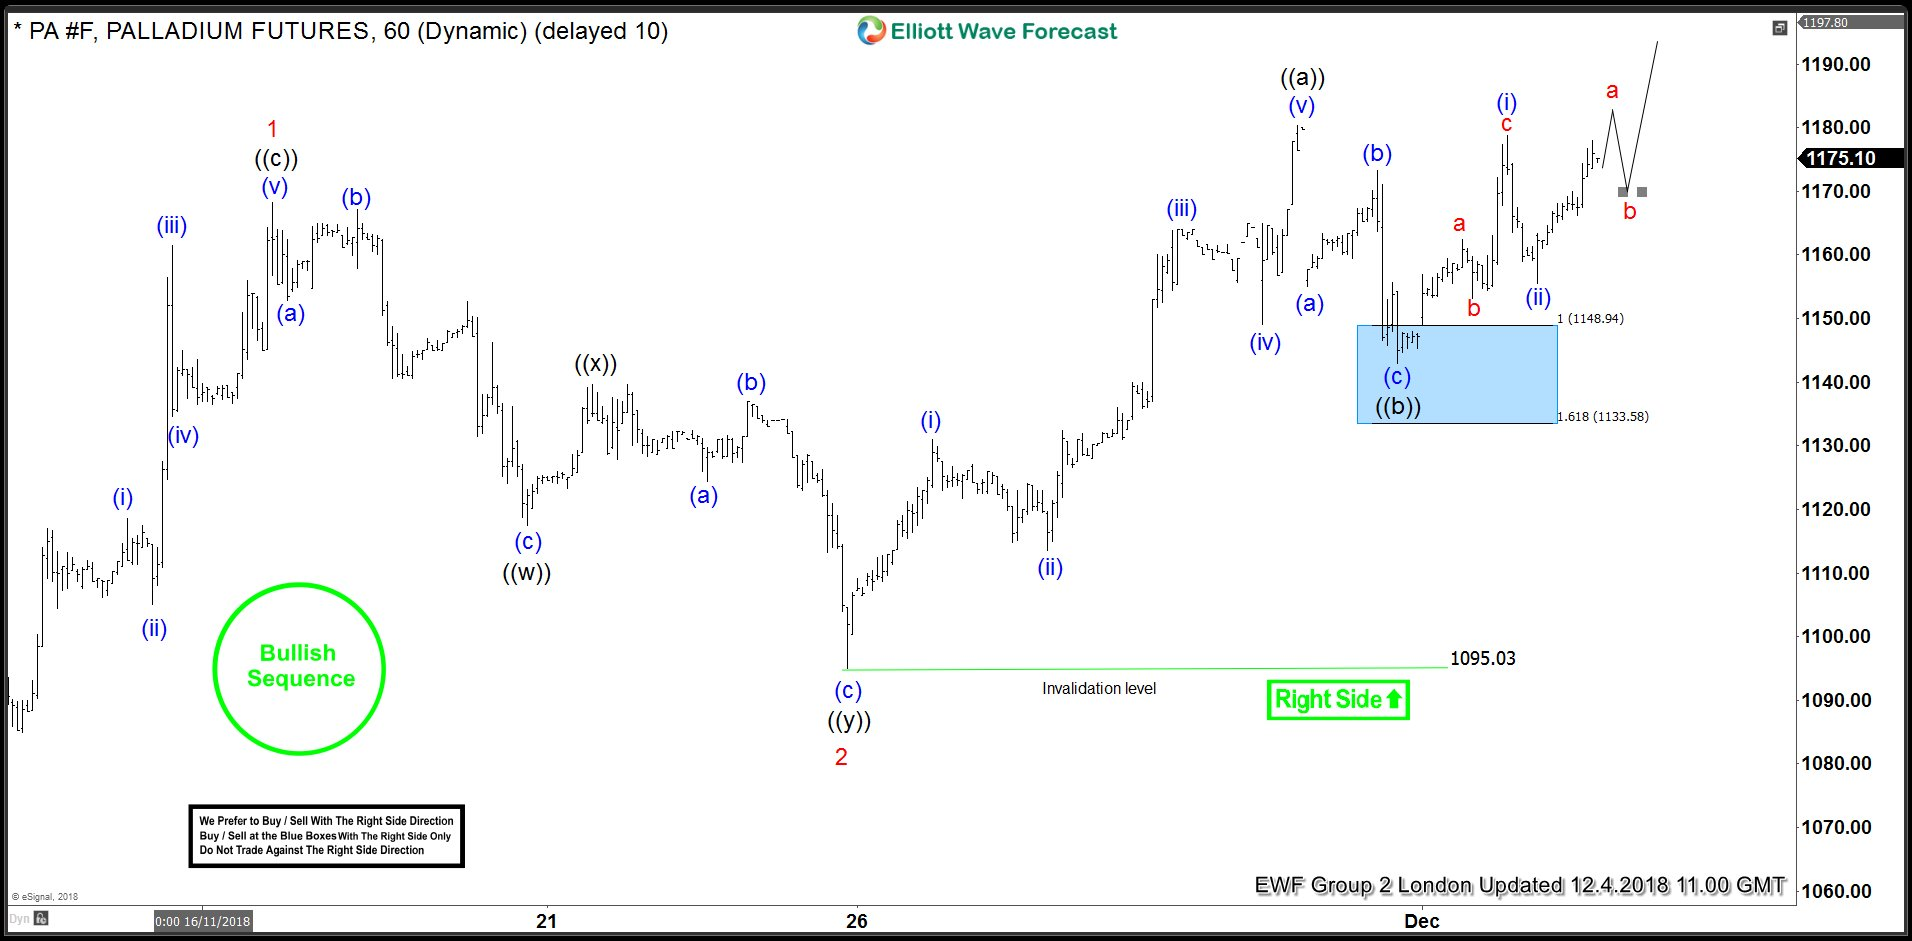 Palladium Elliott Wave Analysis: Forecasting And Buying The Rally